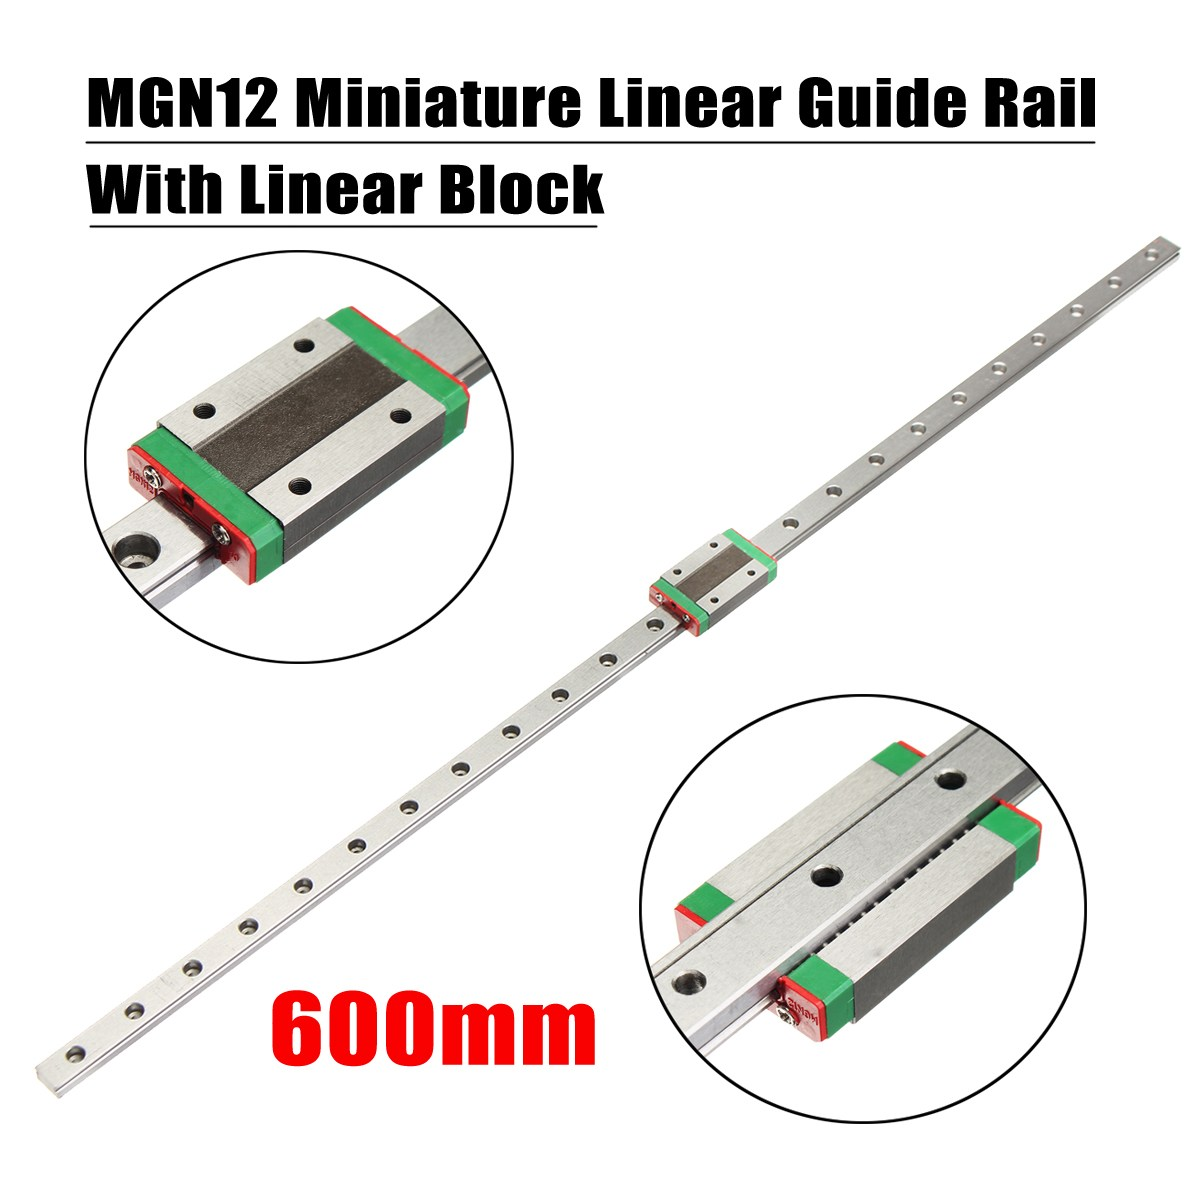 New High Quality 3D Printer Axis Parts Linear Rail Guide Slide MGN12 12mm 600mm + Mini MGN12H Linear Block Black scv25uu slide linear bearings aluminum box type cylinder axis scv25 linear motion ball silide units cnc parts high quality